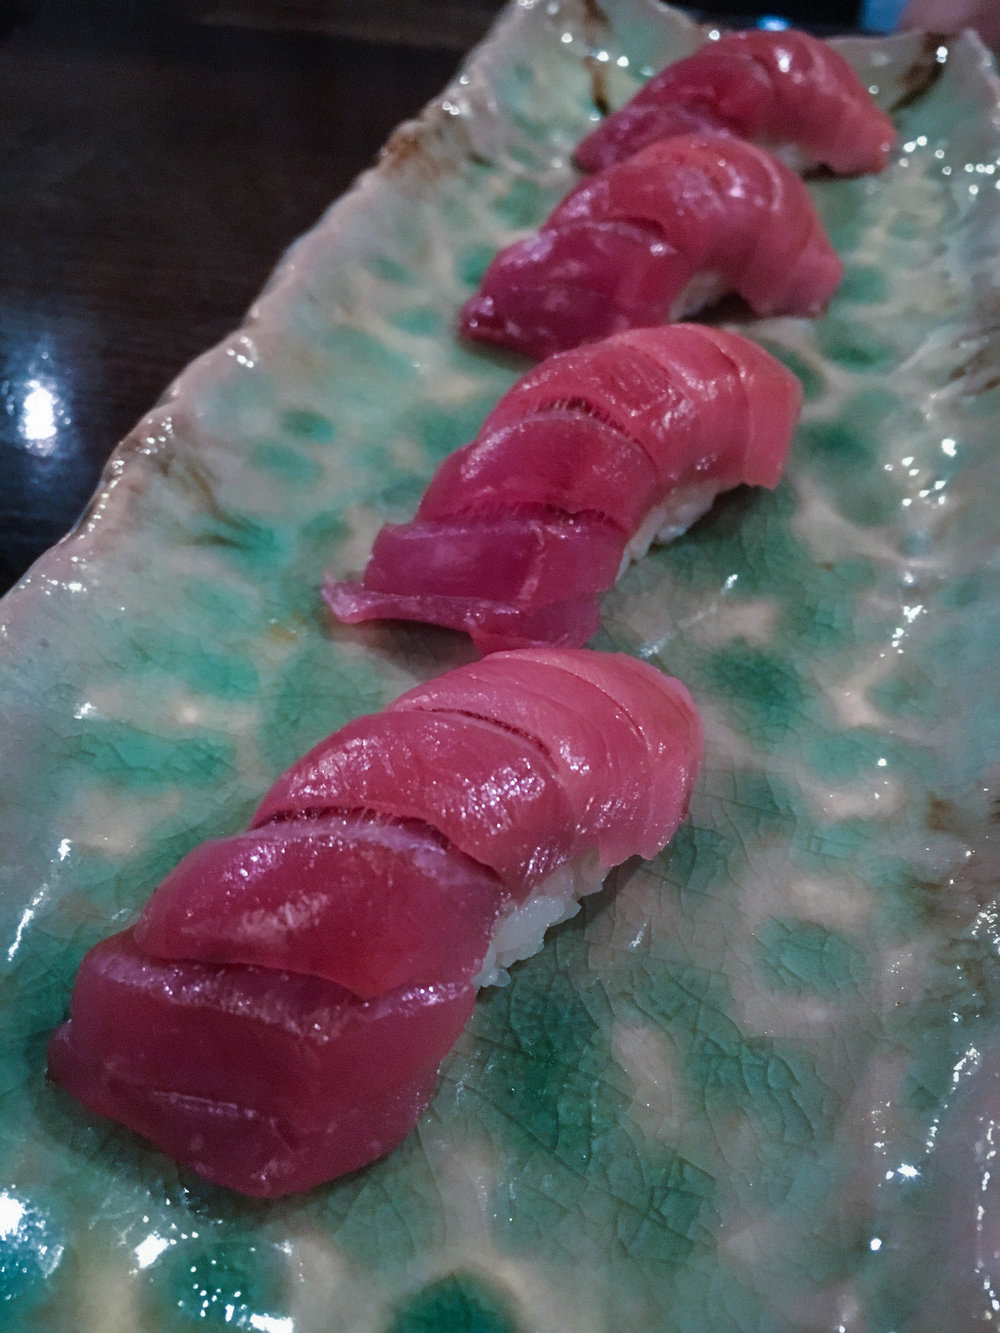 Fatty tuna for the win.